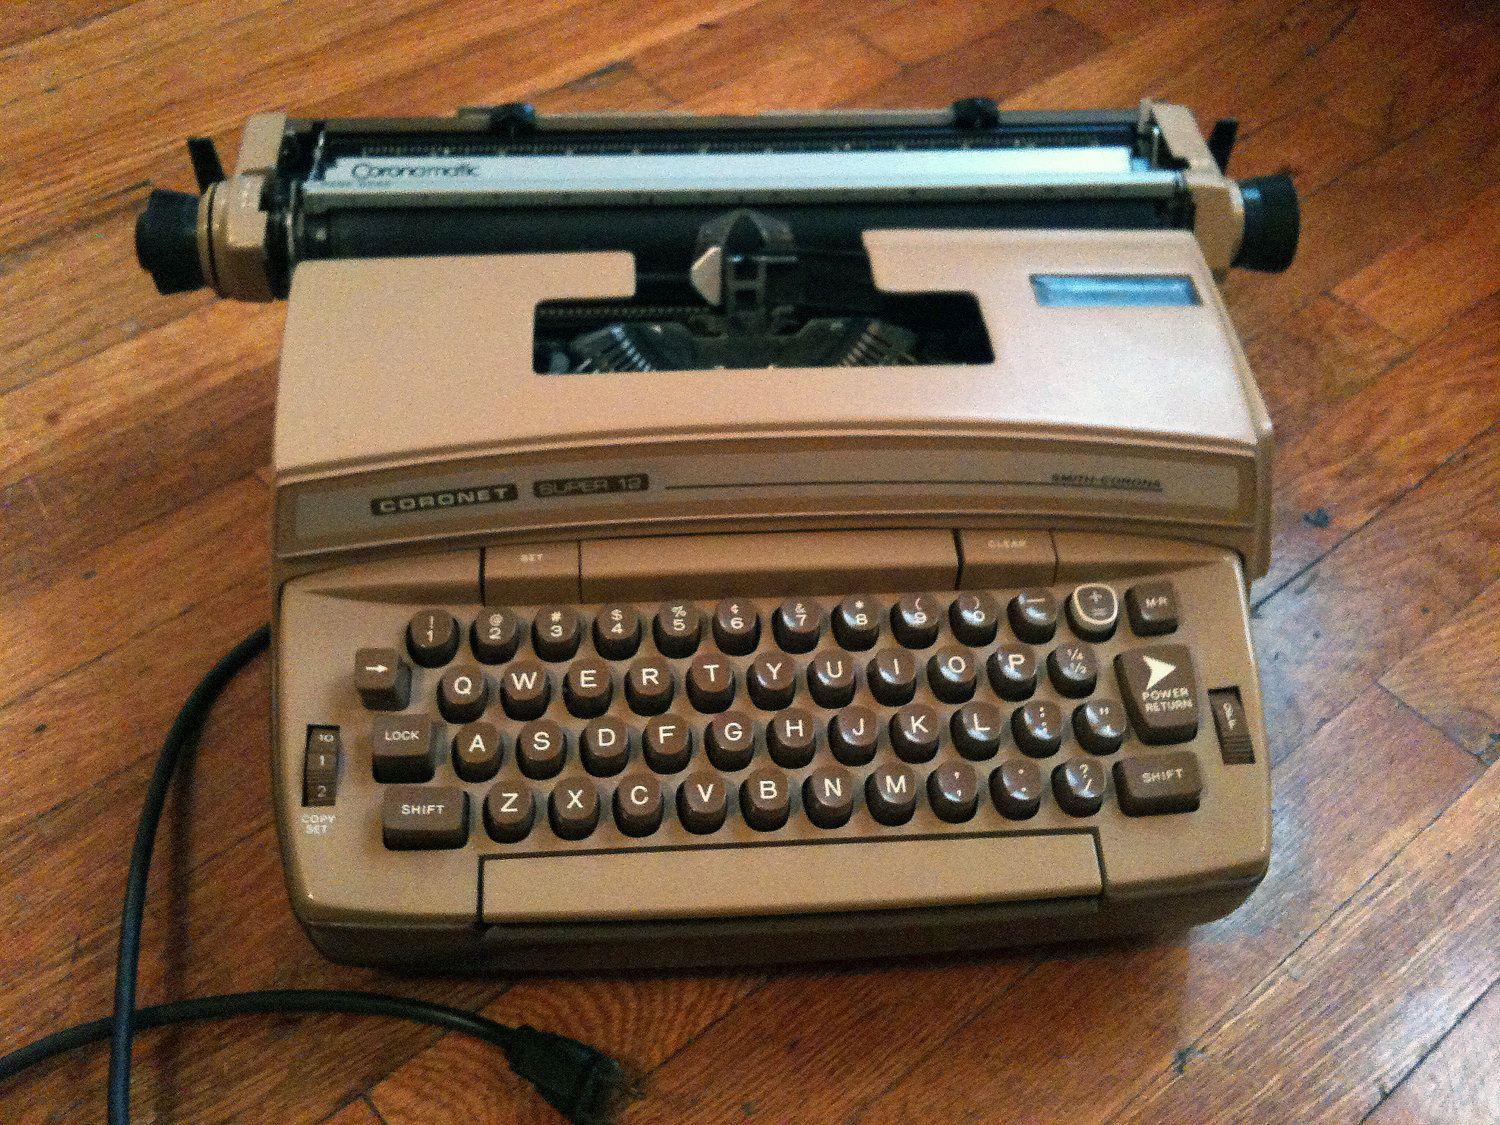 Also look for this typewriter from my shop in the upcoming film, Blood Ties with Mila Kunis and Clive Owen.  More from HomerowAperture: http://www.etsy.com/shop/HomerowAperture